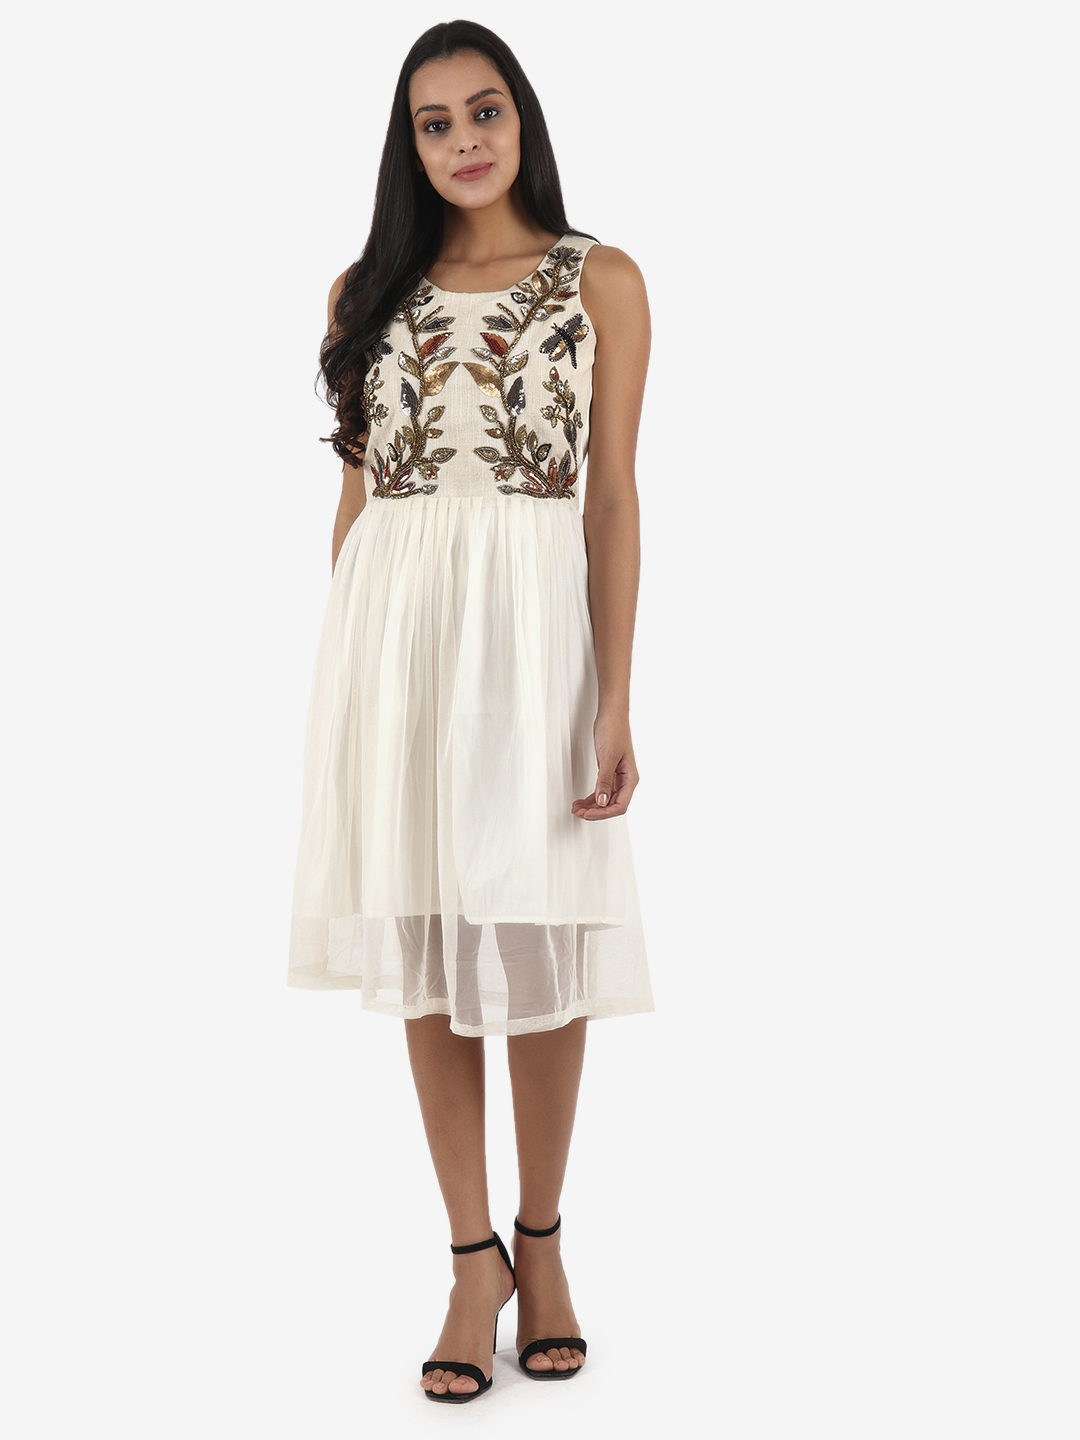 DIWAAH | Diwaah Off White Color Embellished Fit and Flare Dress